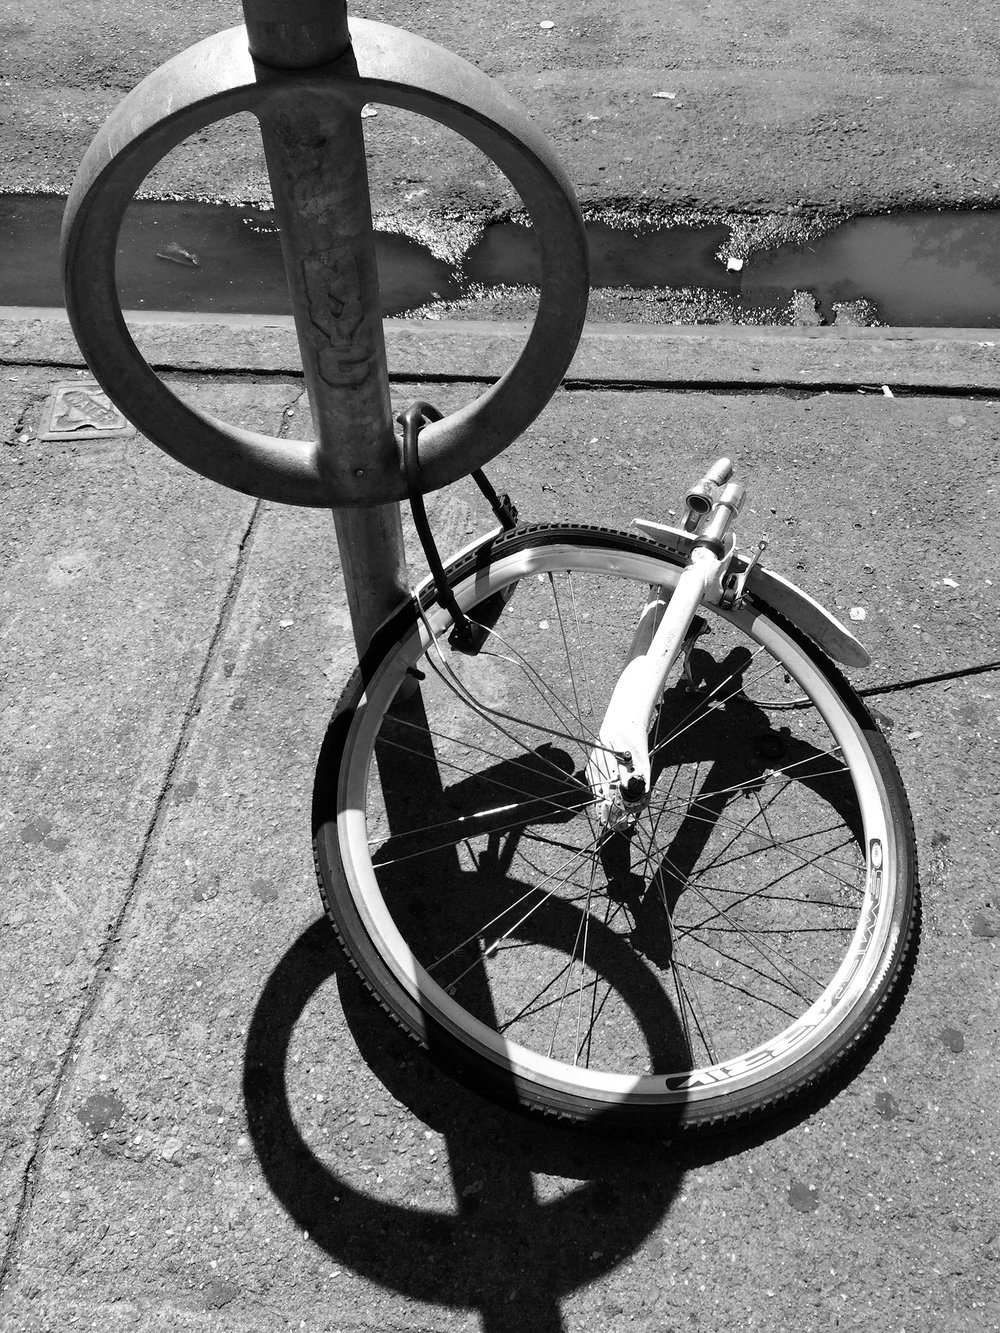 The bikes of New York